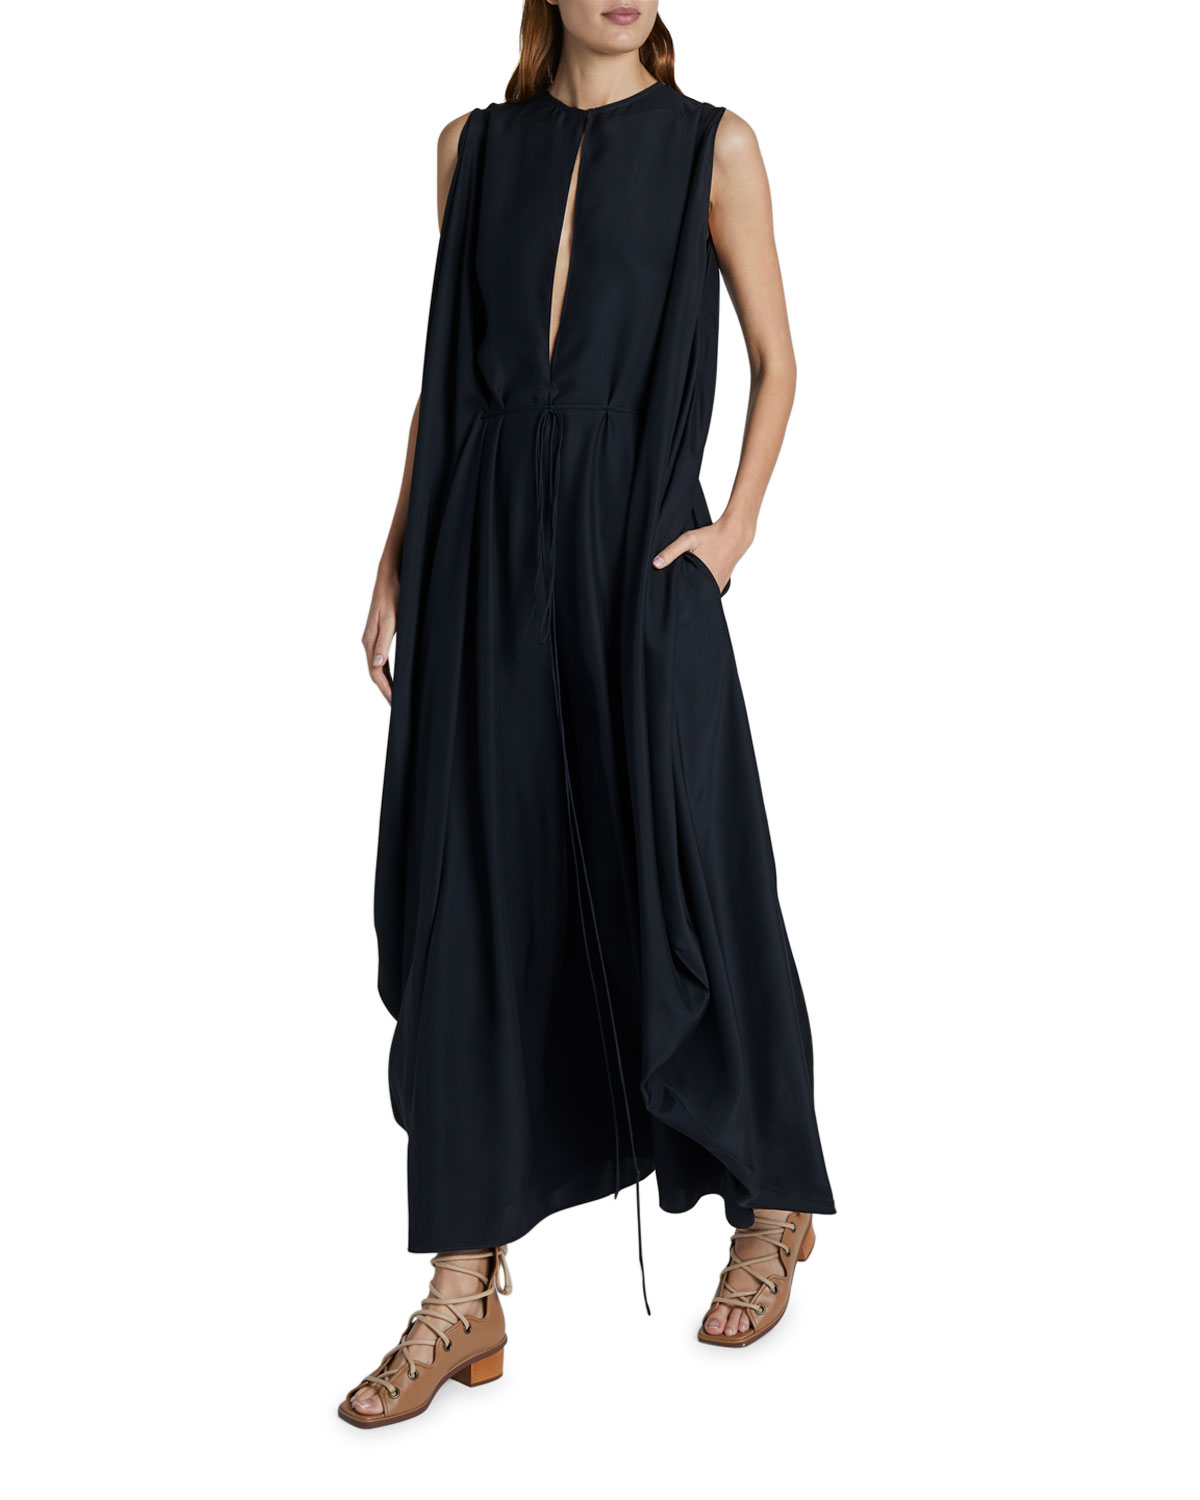 Stella McCartney Satin Sleeveless Maxi Dress